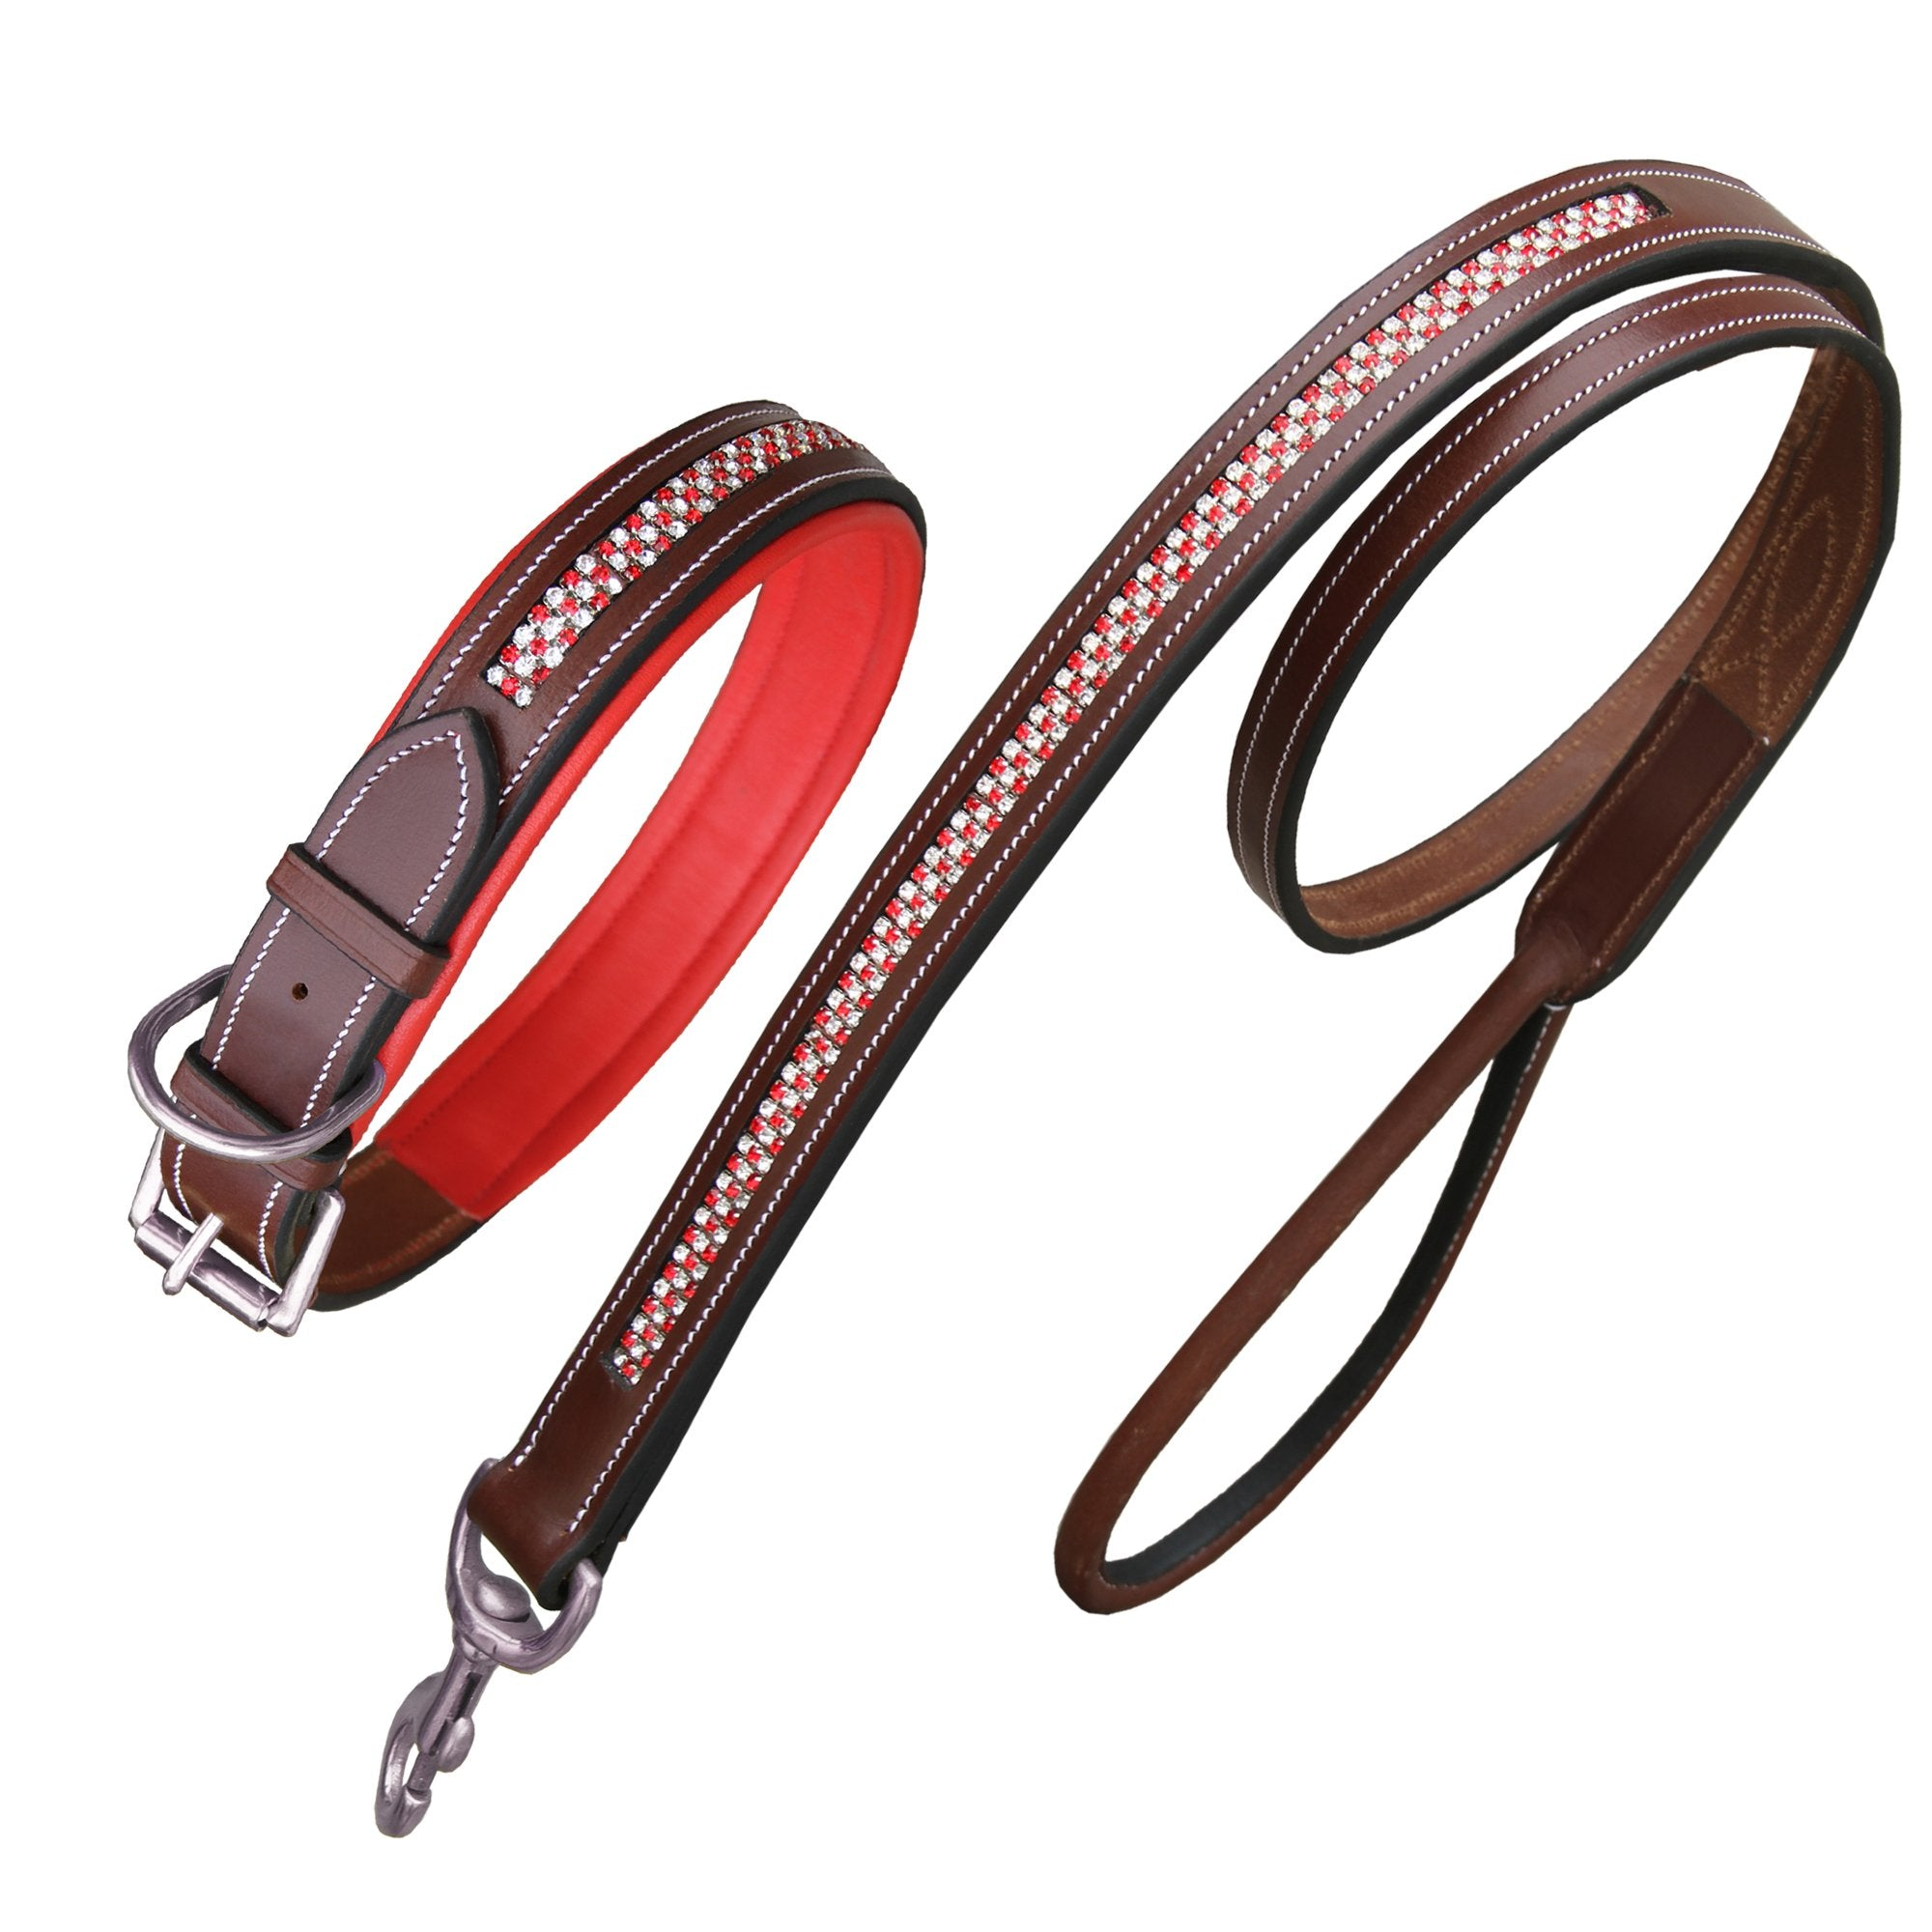 ExionPro Red Bling Dog Collar With Lead-Dog Collar and Leads from Bridles & Reins